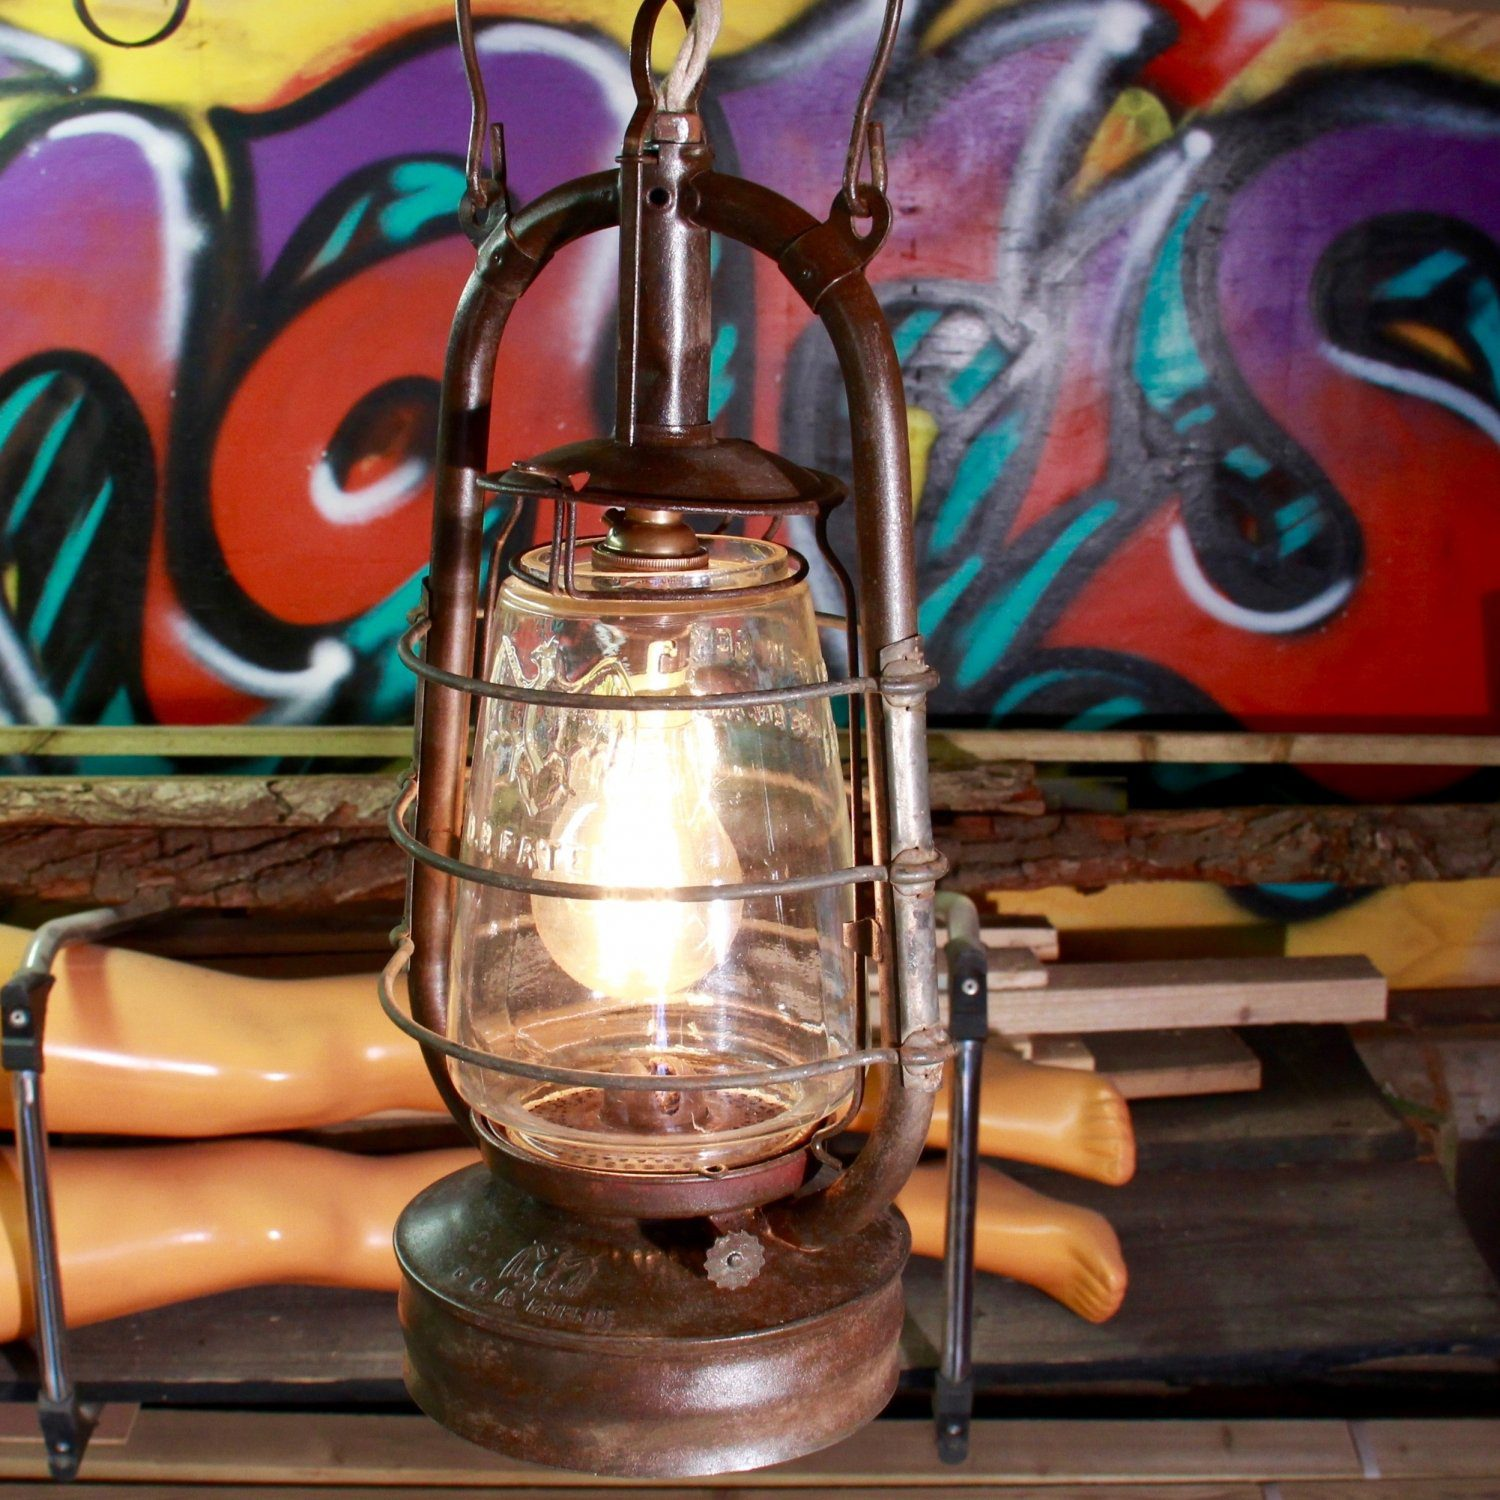 Vintage oil lamp converted into electric pendant lamp